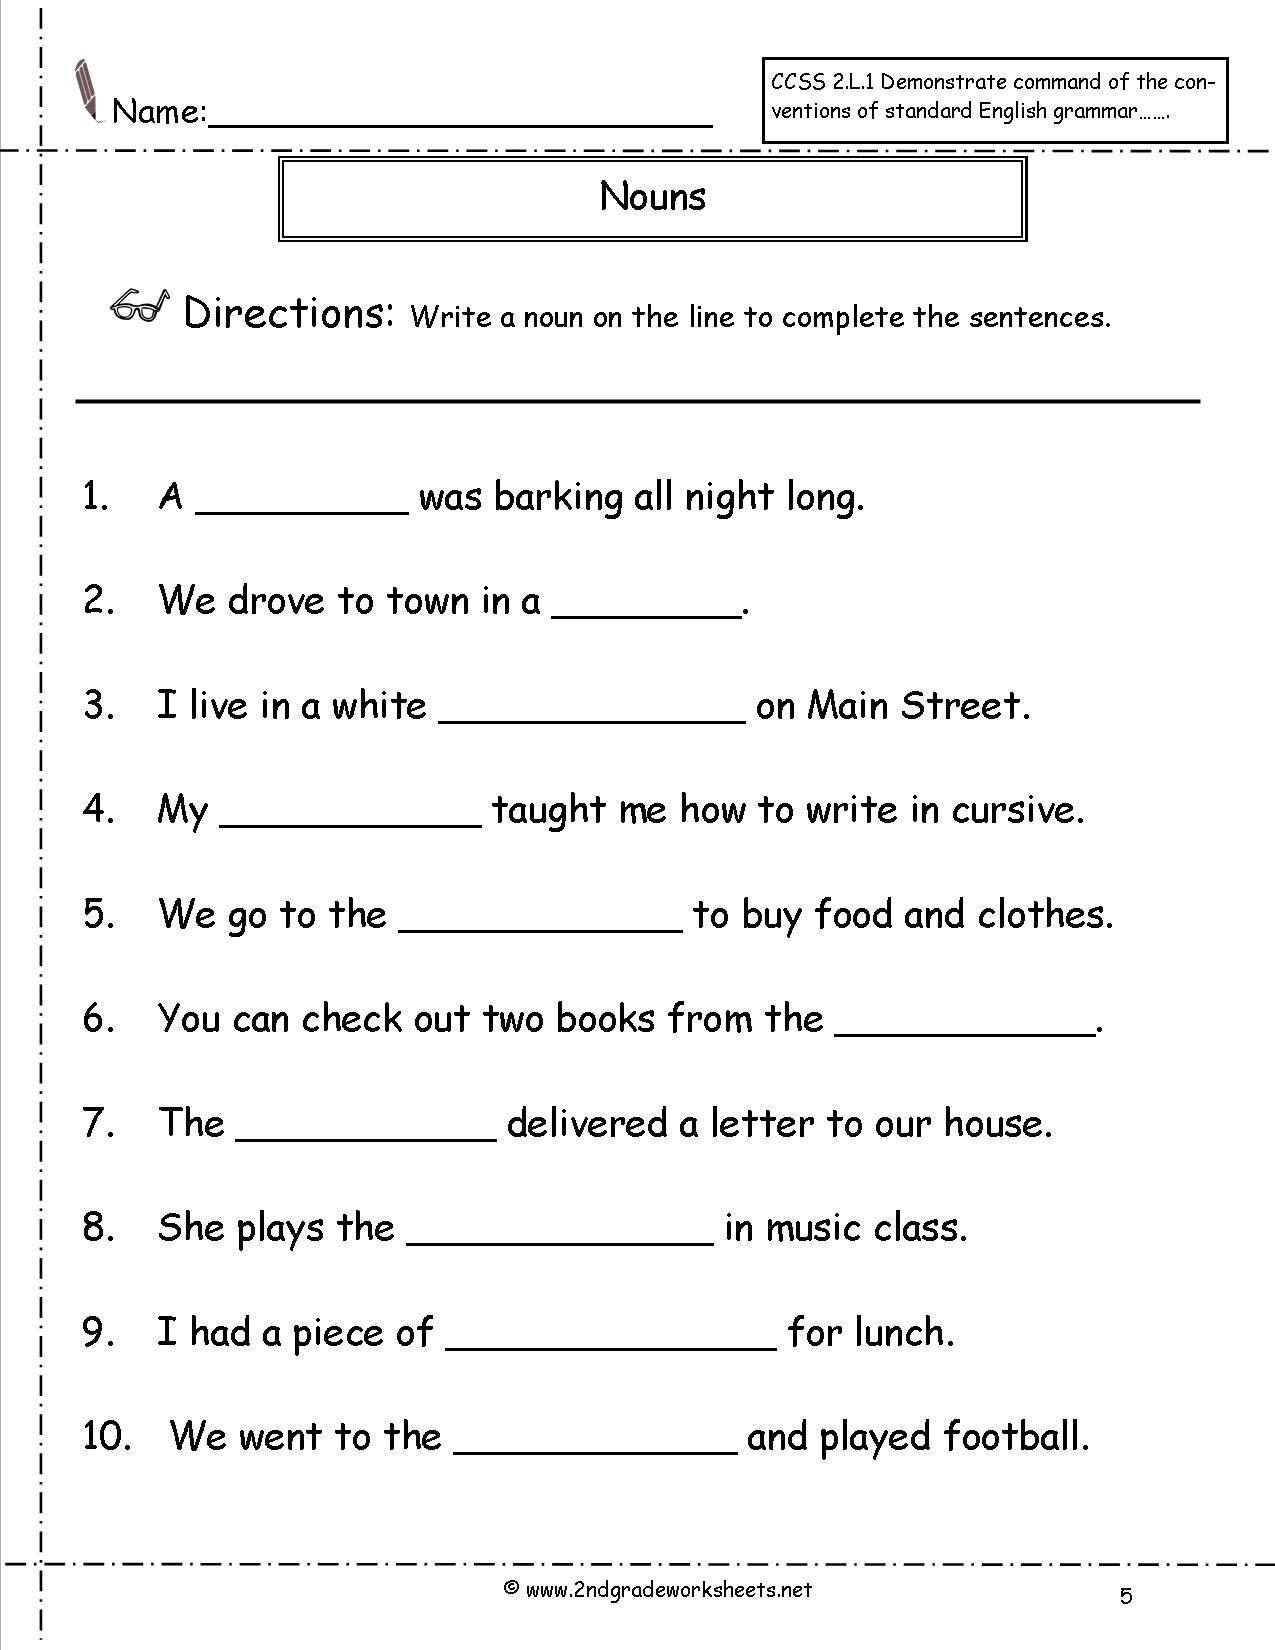 hight resolution of English Grammar Noun Worksheet For Grade 1 Elegant Nouns Worksheets on Best  Worksheets Collection 7422